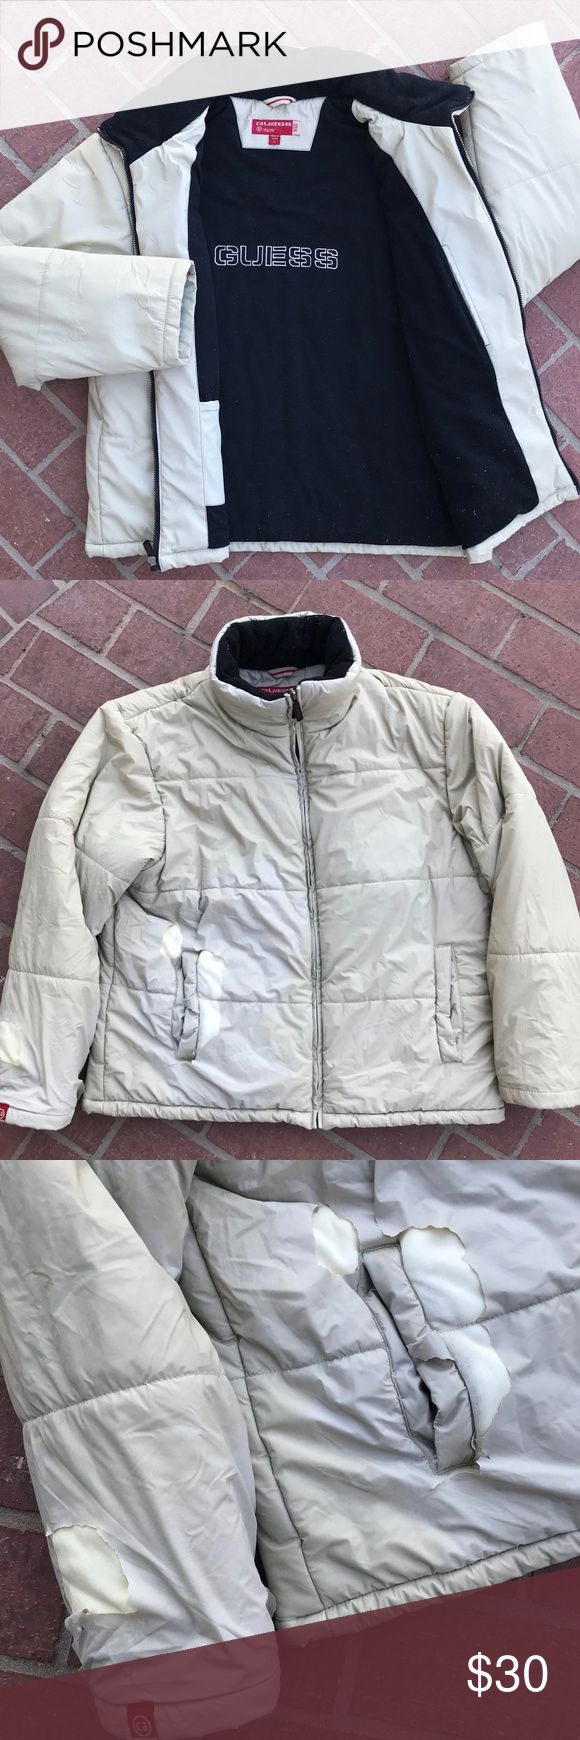 VINTAGE GUESS USA CREAM PUFFER JACKET MEN'S SIZE L Details: Has severe defects, see photos please. Cream puffer jacket. Black fleece inside. Has a few small defects (see photos) but overall clean & in good wearable condition. Full zip. Guess logo on zipper. 2 front pockets. Guess label on right sleeve & bottom left of jacket. Guess logo embroidered inside of jacket black fleece inside. 2 inside pockets.  Measurements: Pit-to-pit:26 inches. Sleeves: 25 inches. Back Length: 32 inches.  *Ships…